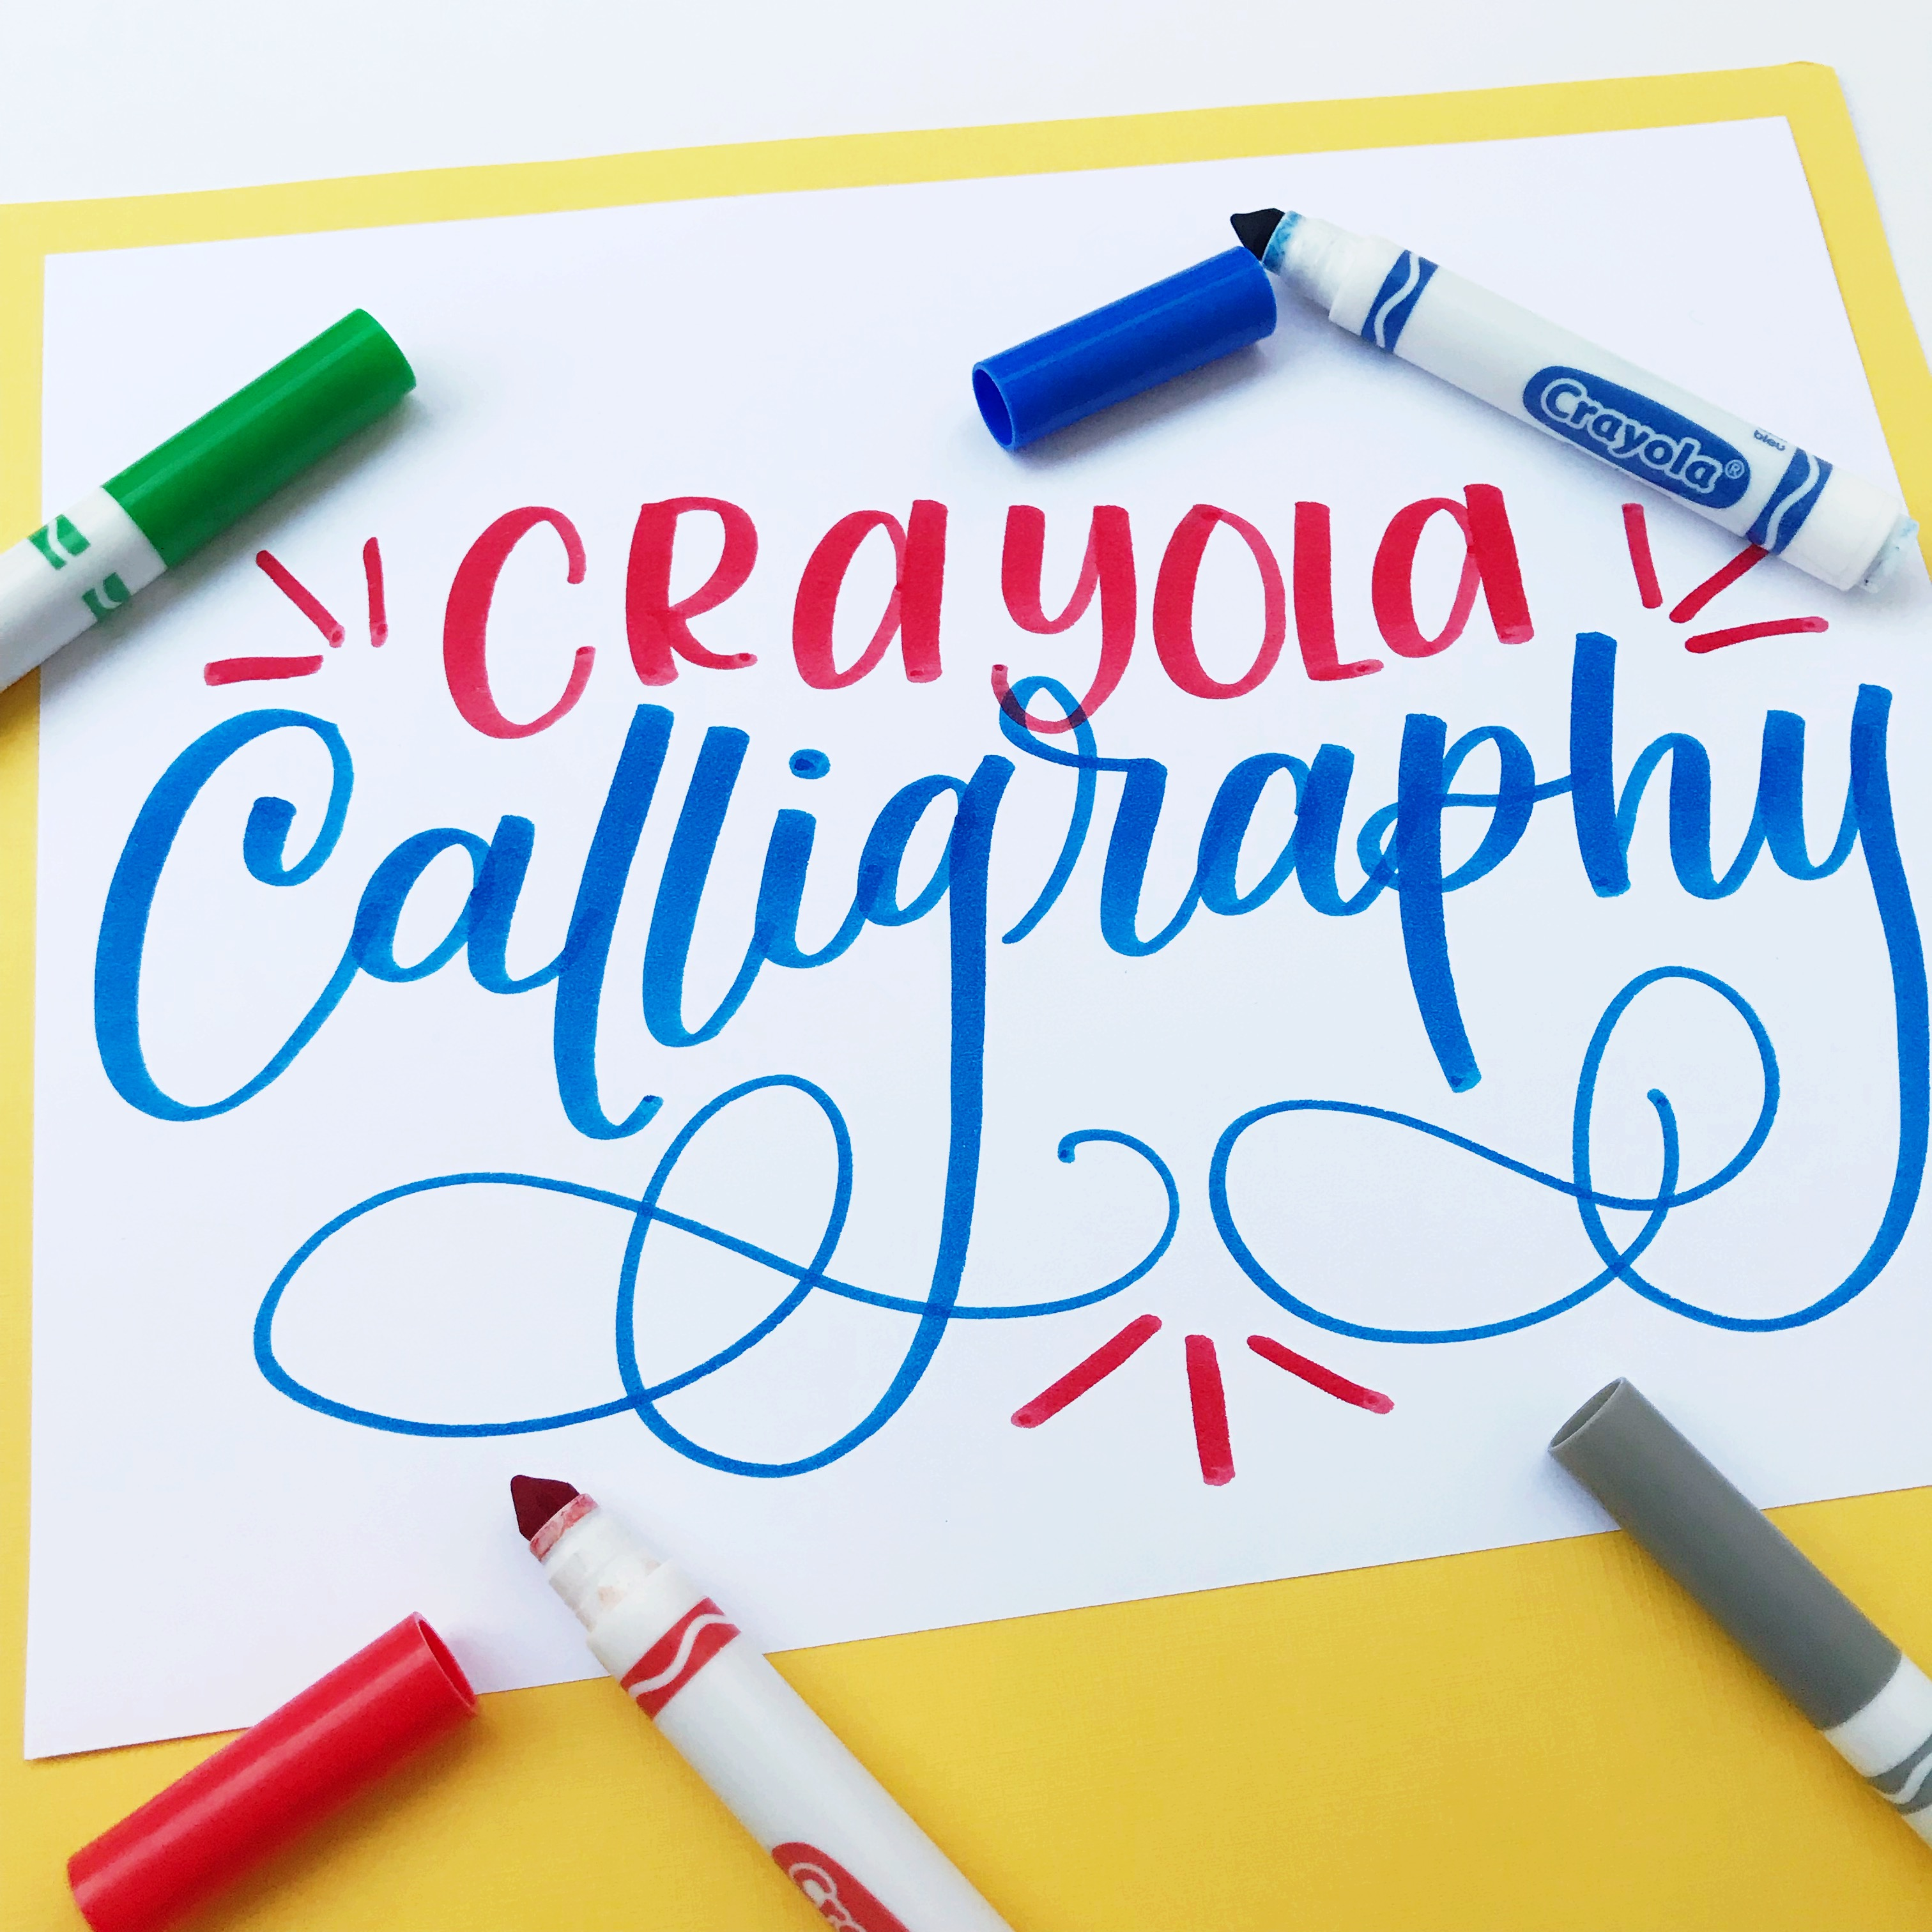 Crayola Calligraphy for Beginners